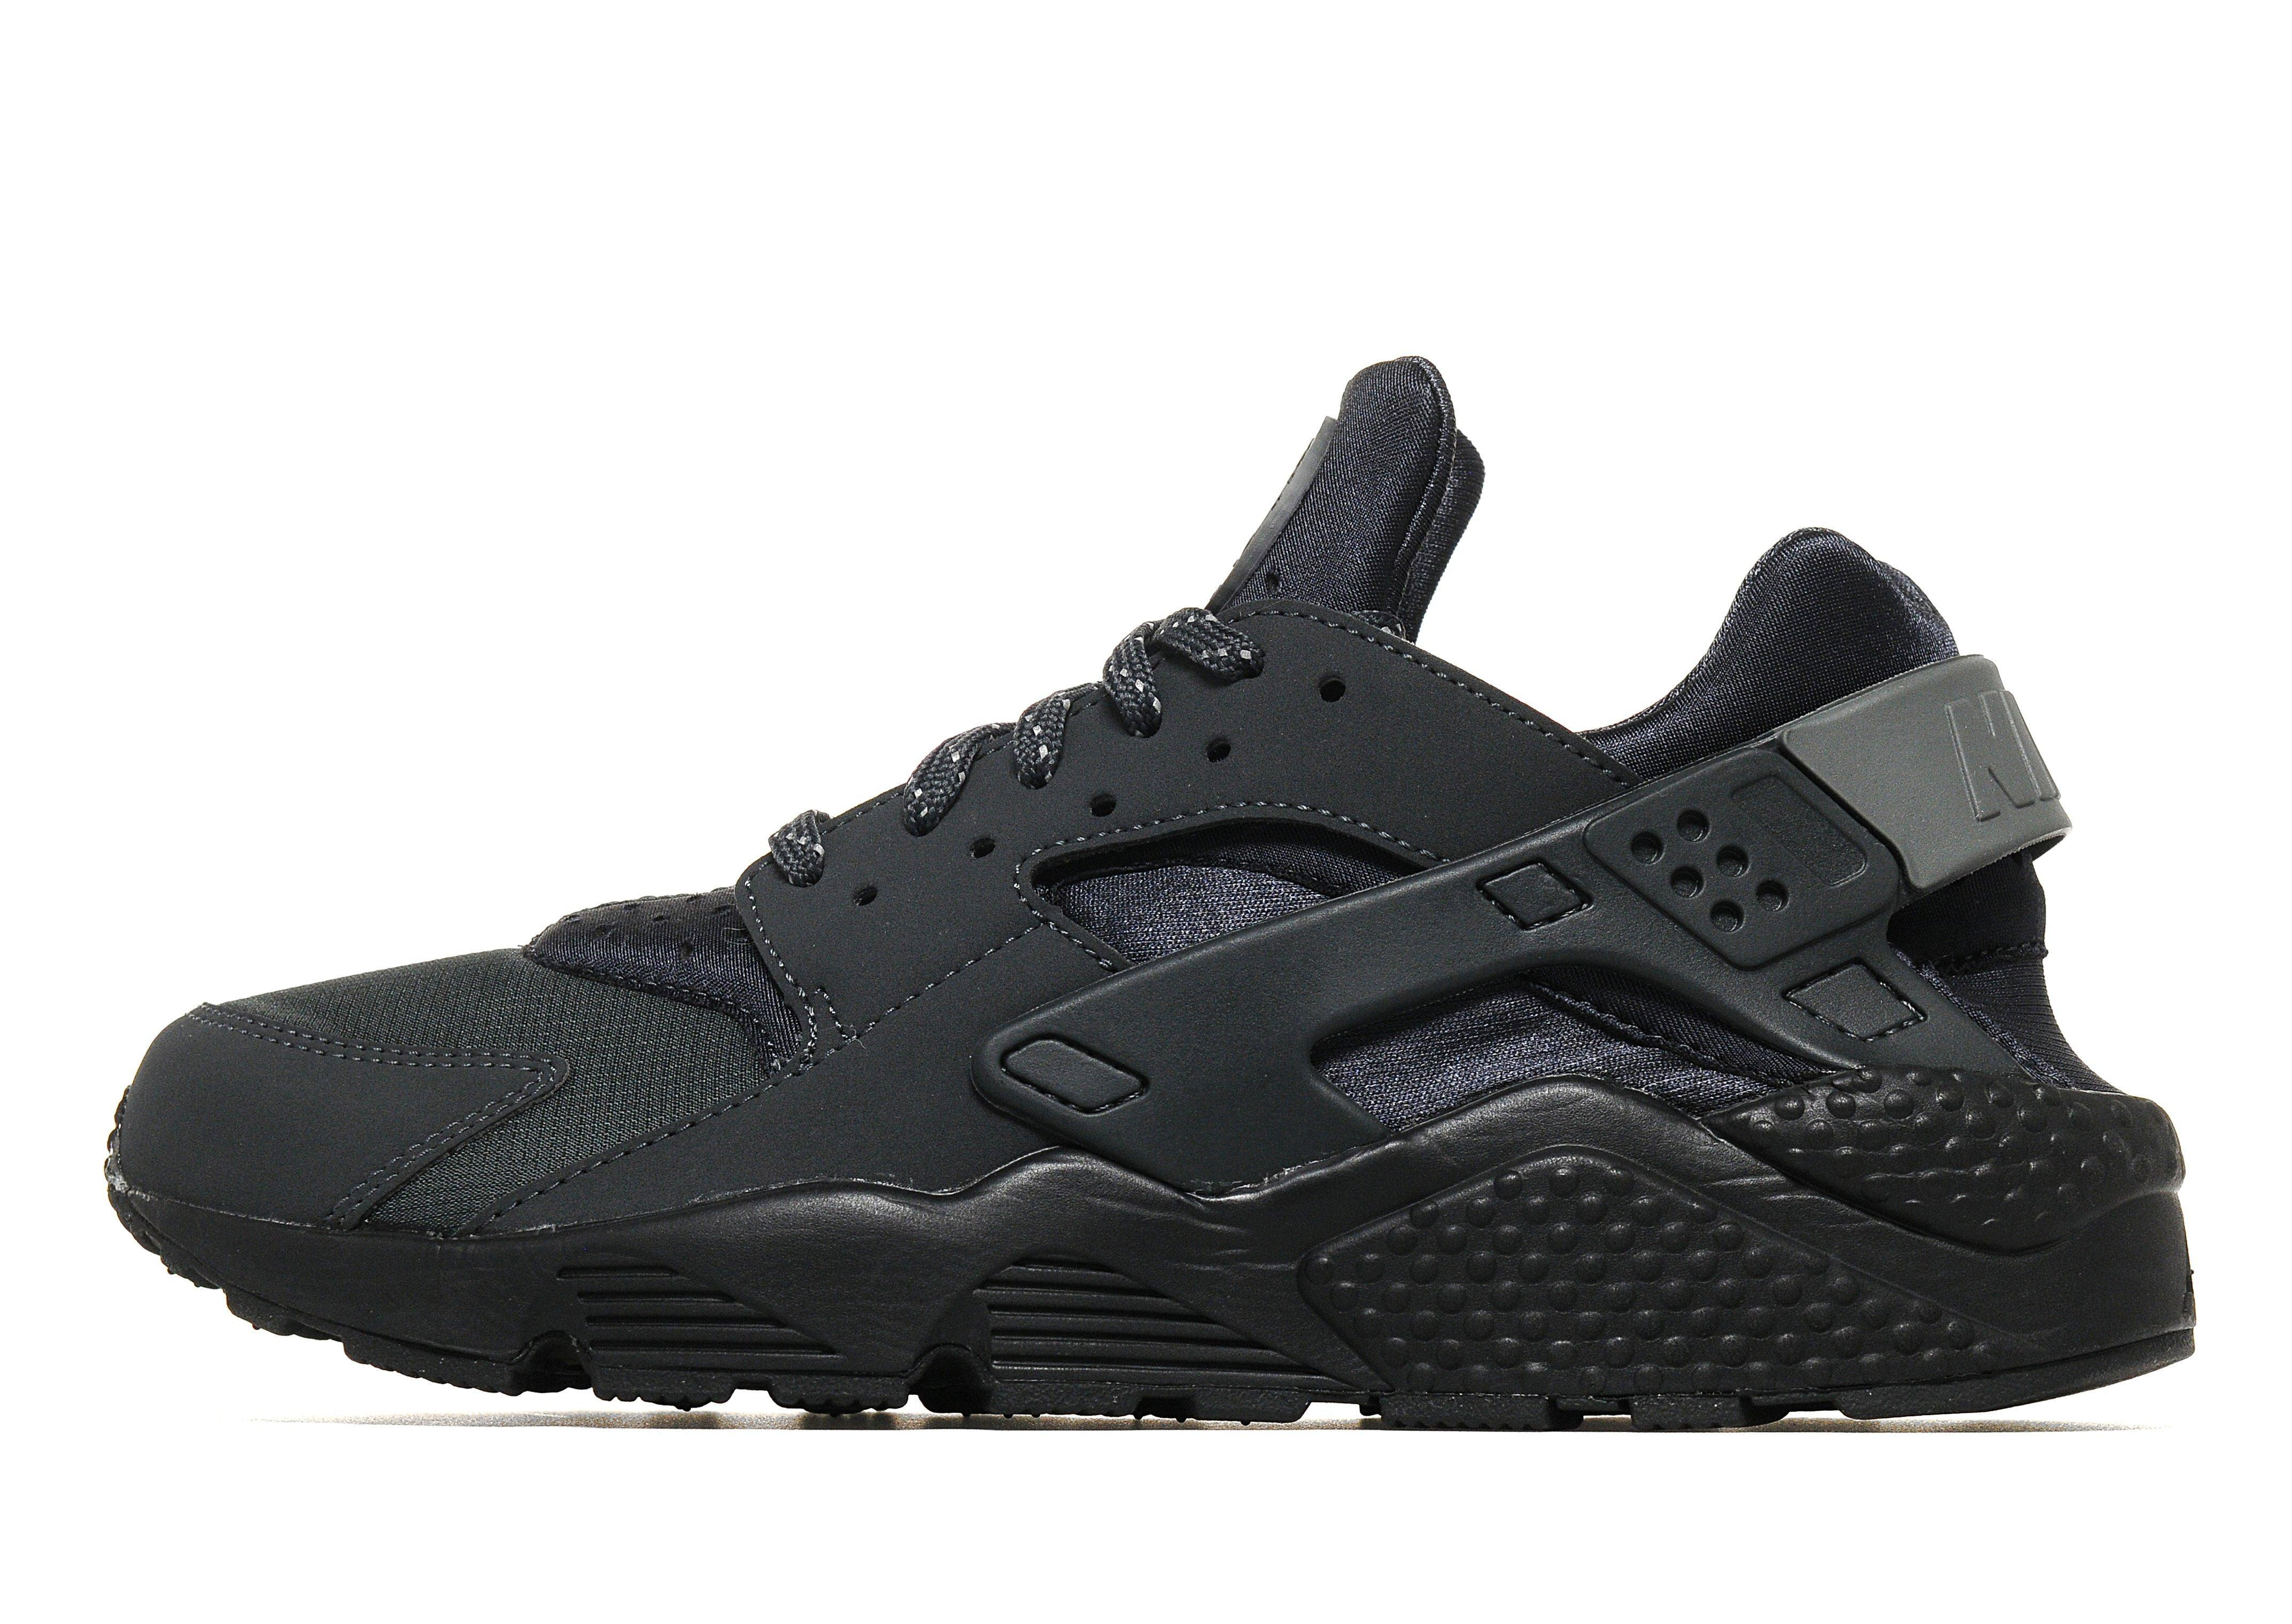 6450221ad5856 new zealand nike roshe one running shoe 176e5 c04cc  sweden lyst nike air  huarache in gray for men 3c2f6 a7931